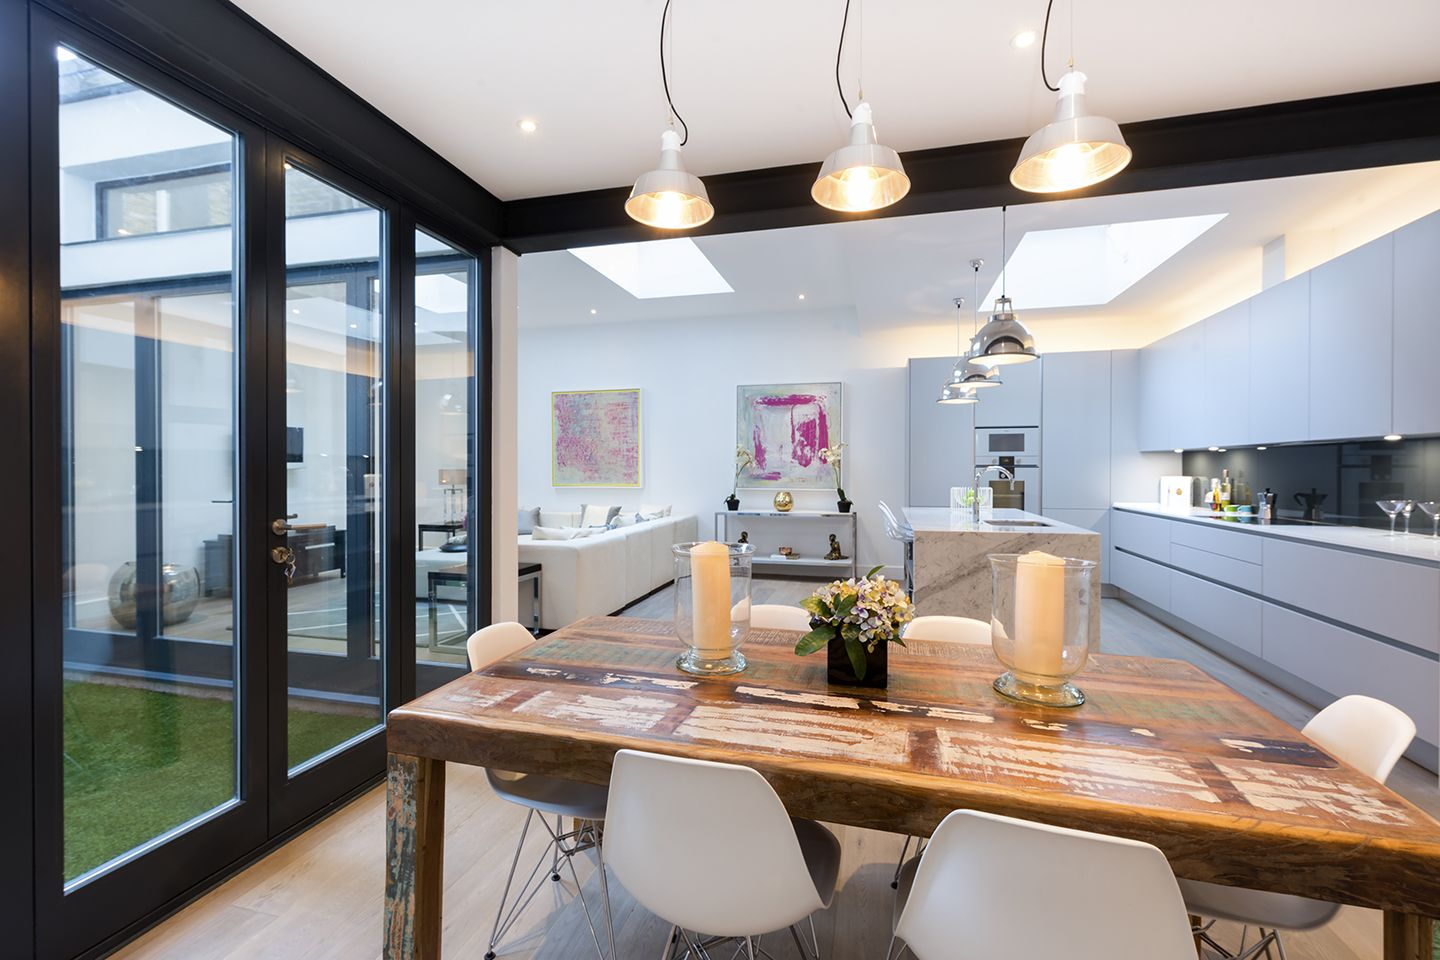 Interior design for double bedroom flat a lower ground floor flat in this kensington mansion block has been